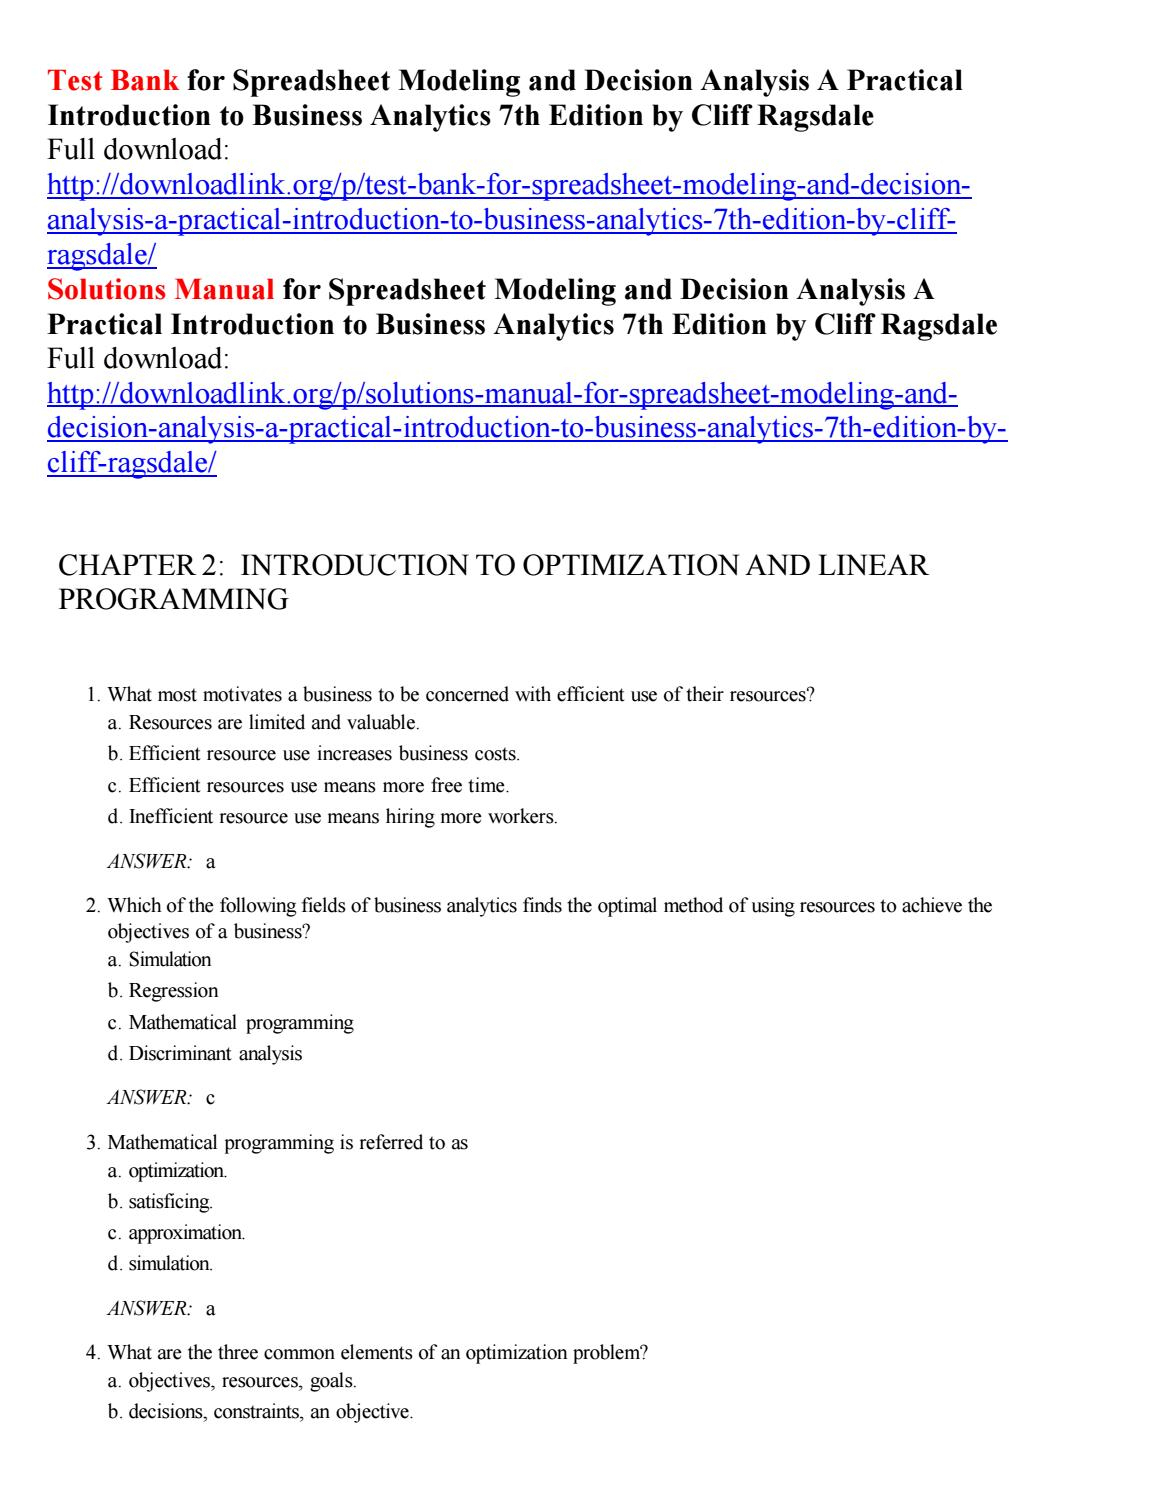 Spreadsheet Modeling And Decision Analysis Intended For Test Bank For Spreadsheet Modeling And Decision Analysis A Practical